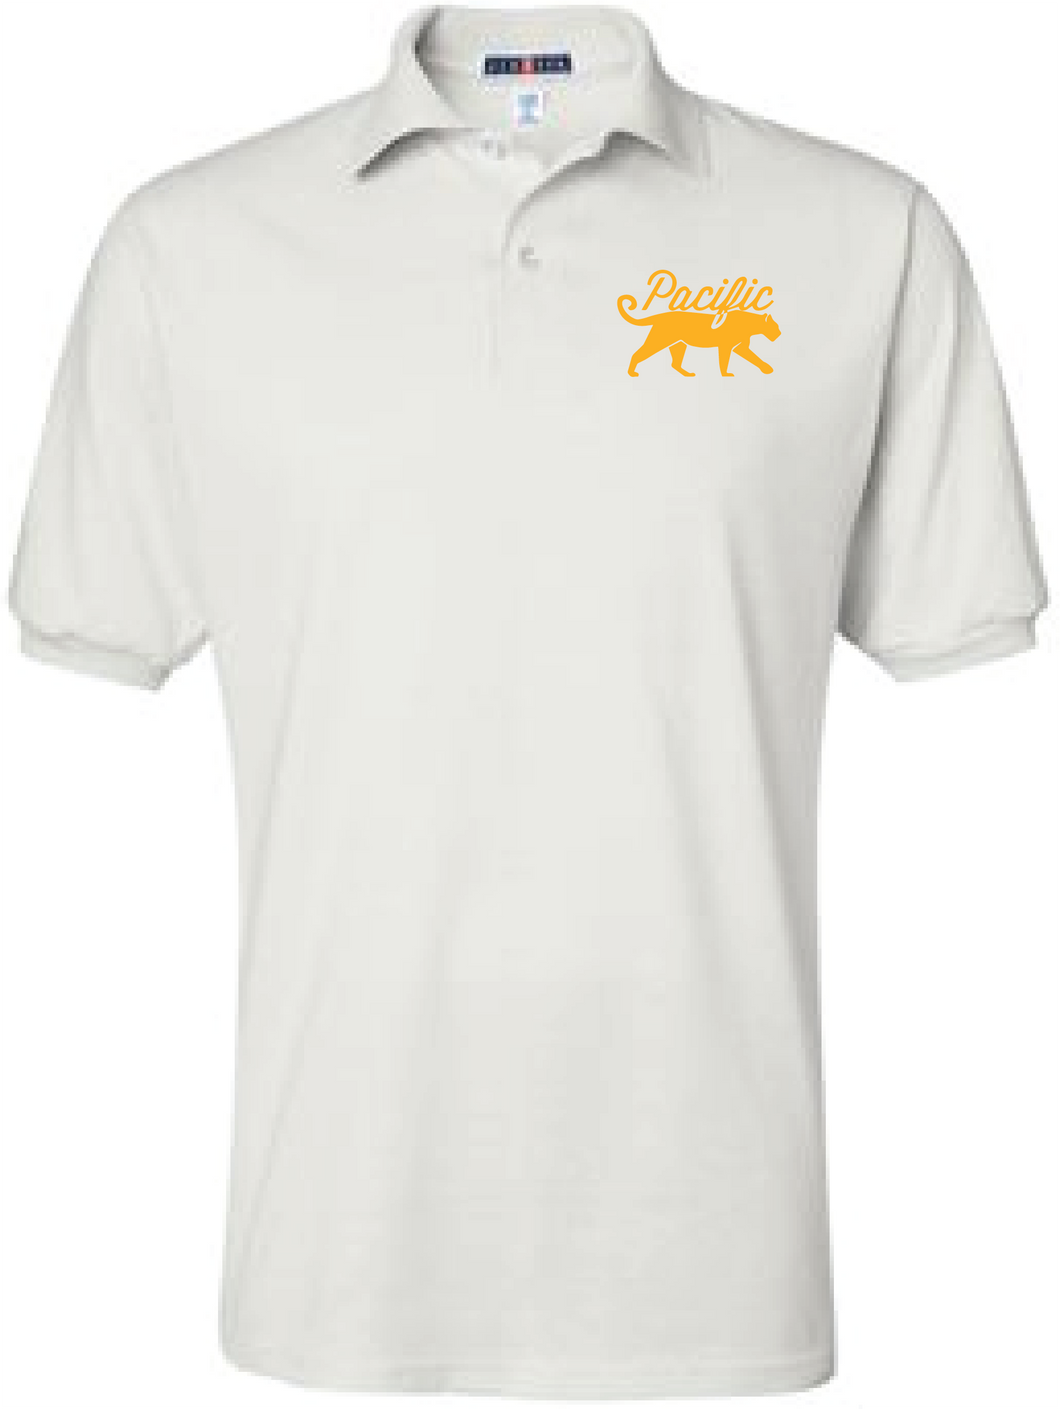 Aspire Pacific Middle School Polo